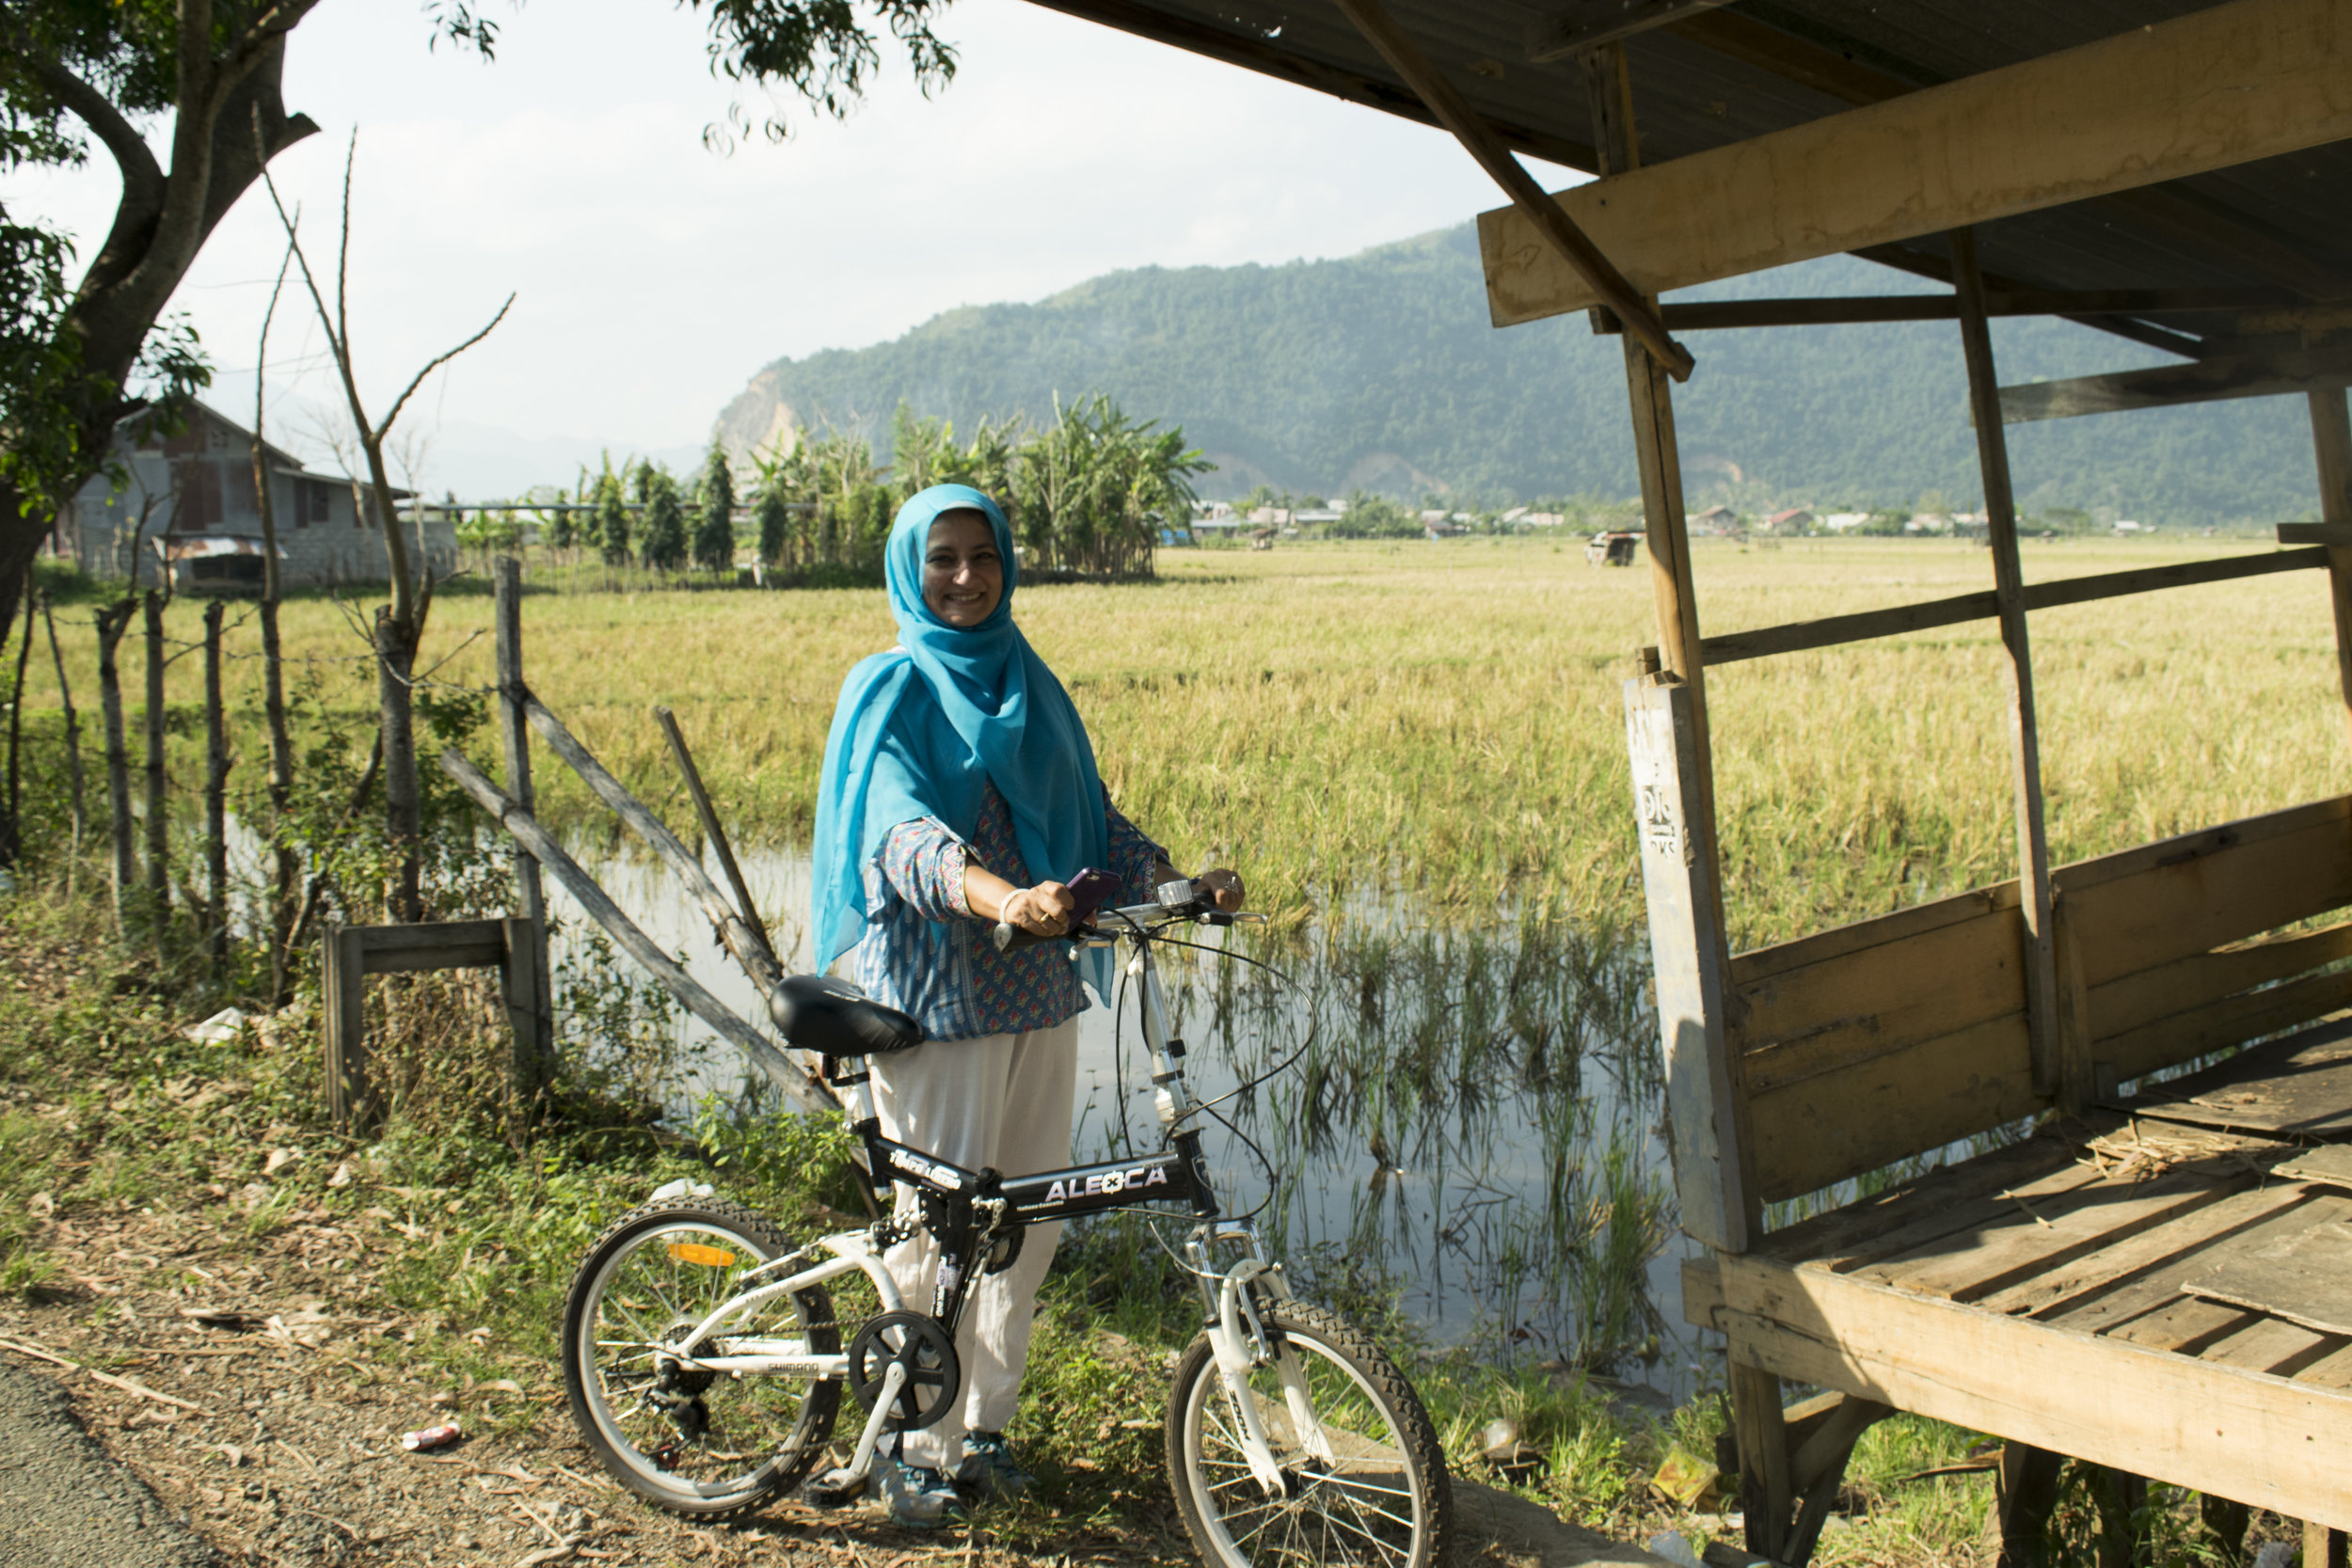 Dr. Aslam parked near a marsh on her bike ride in Aceh with 'Women on Wheels.'